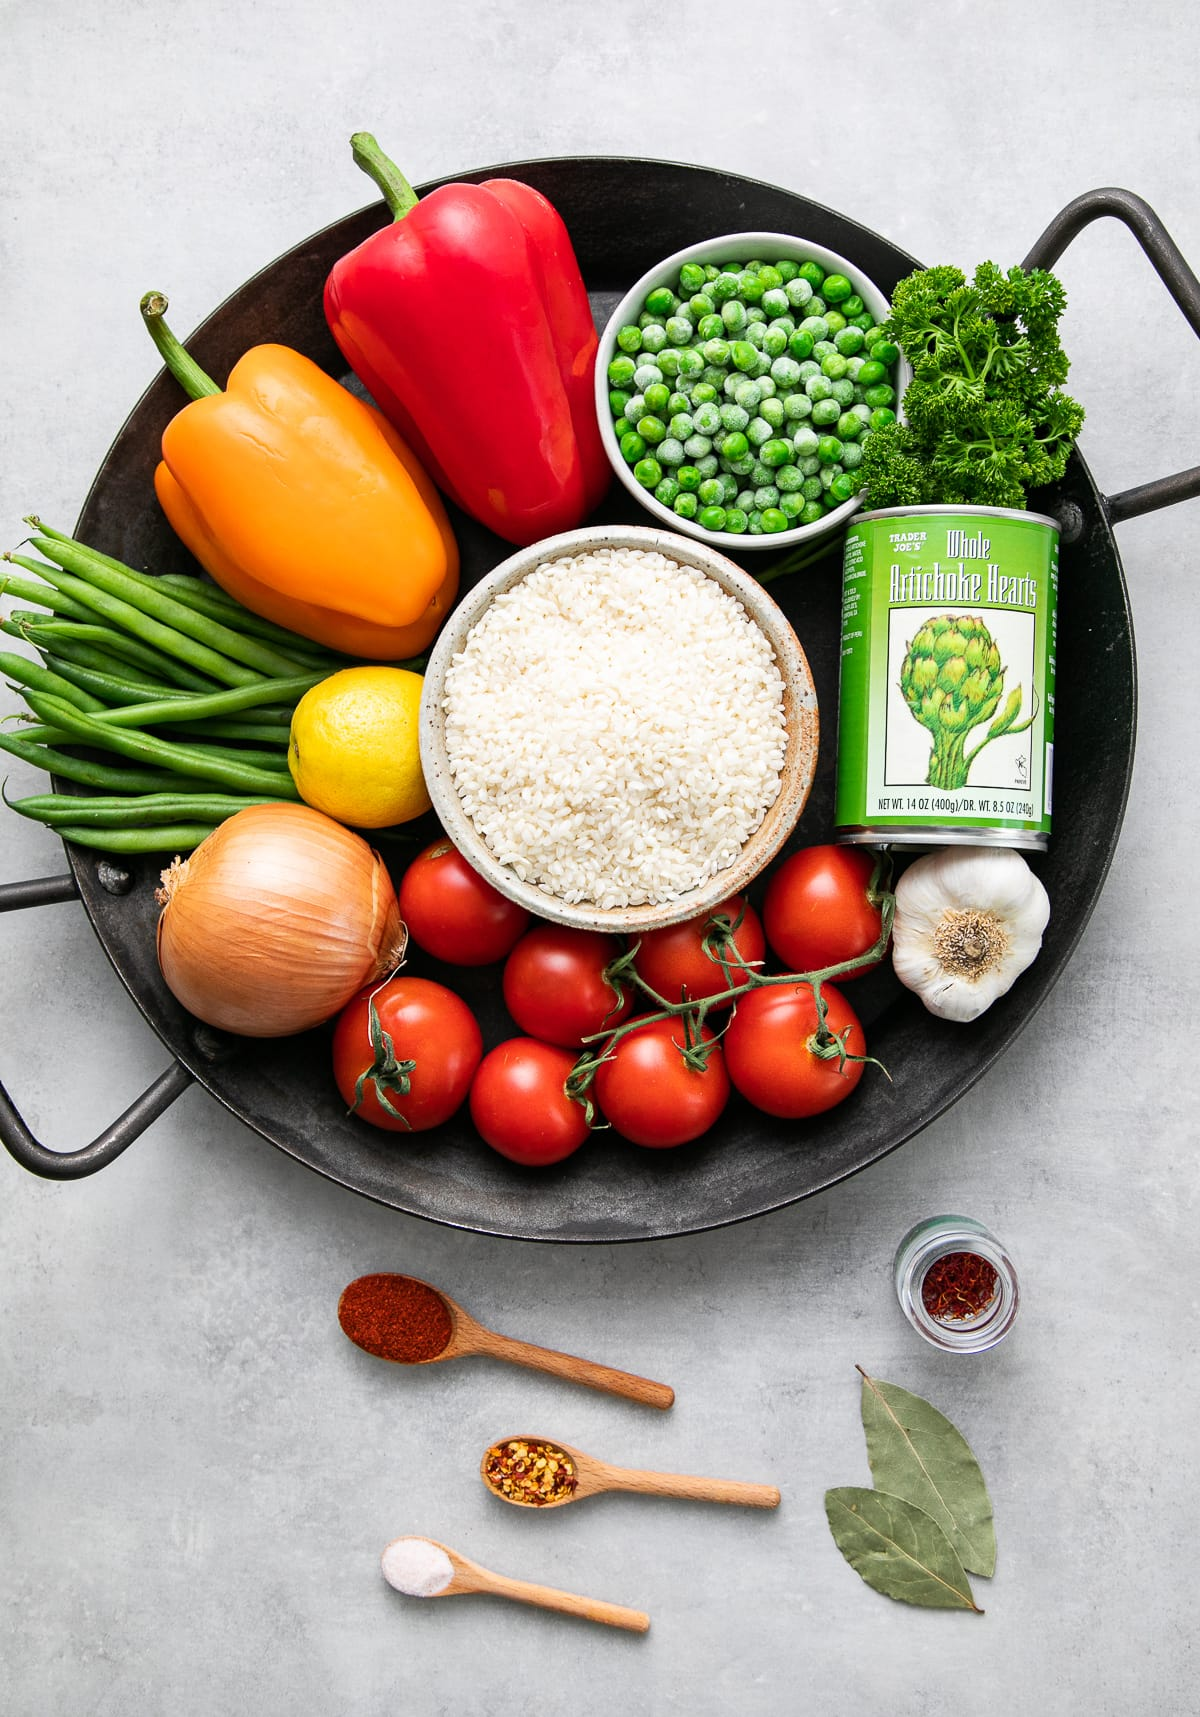 top down view of ingredients used to make vegan paella.